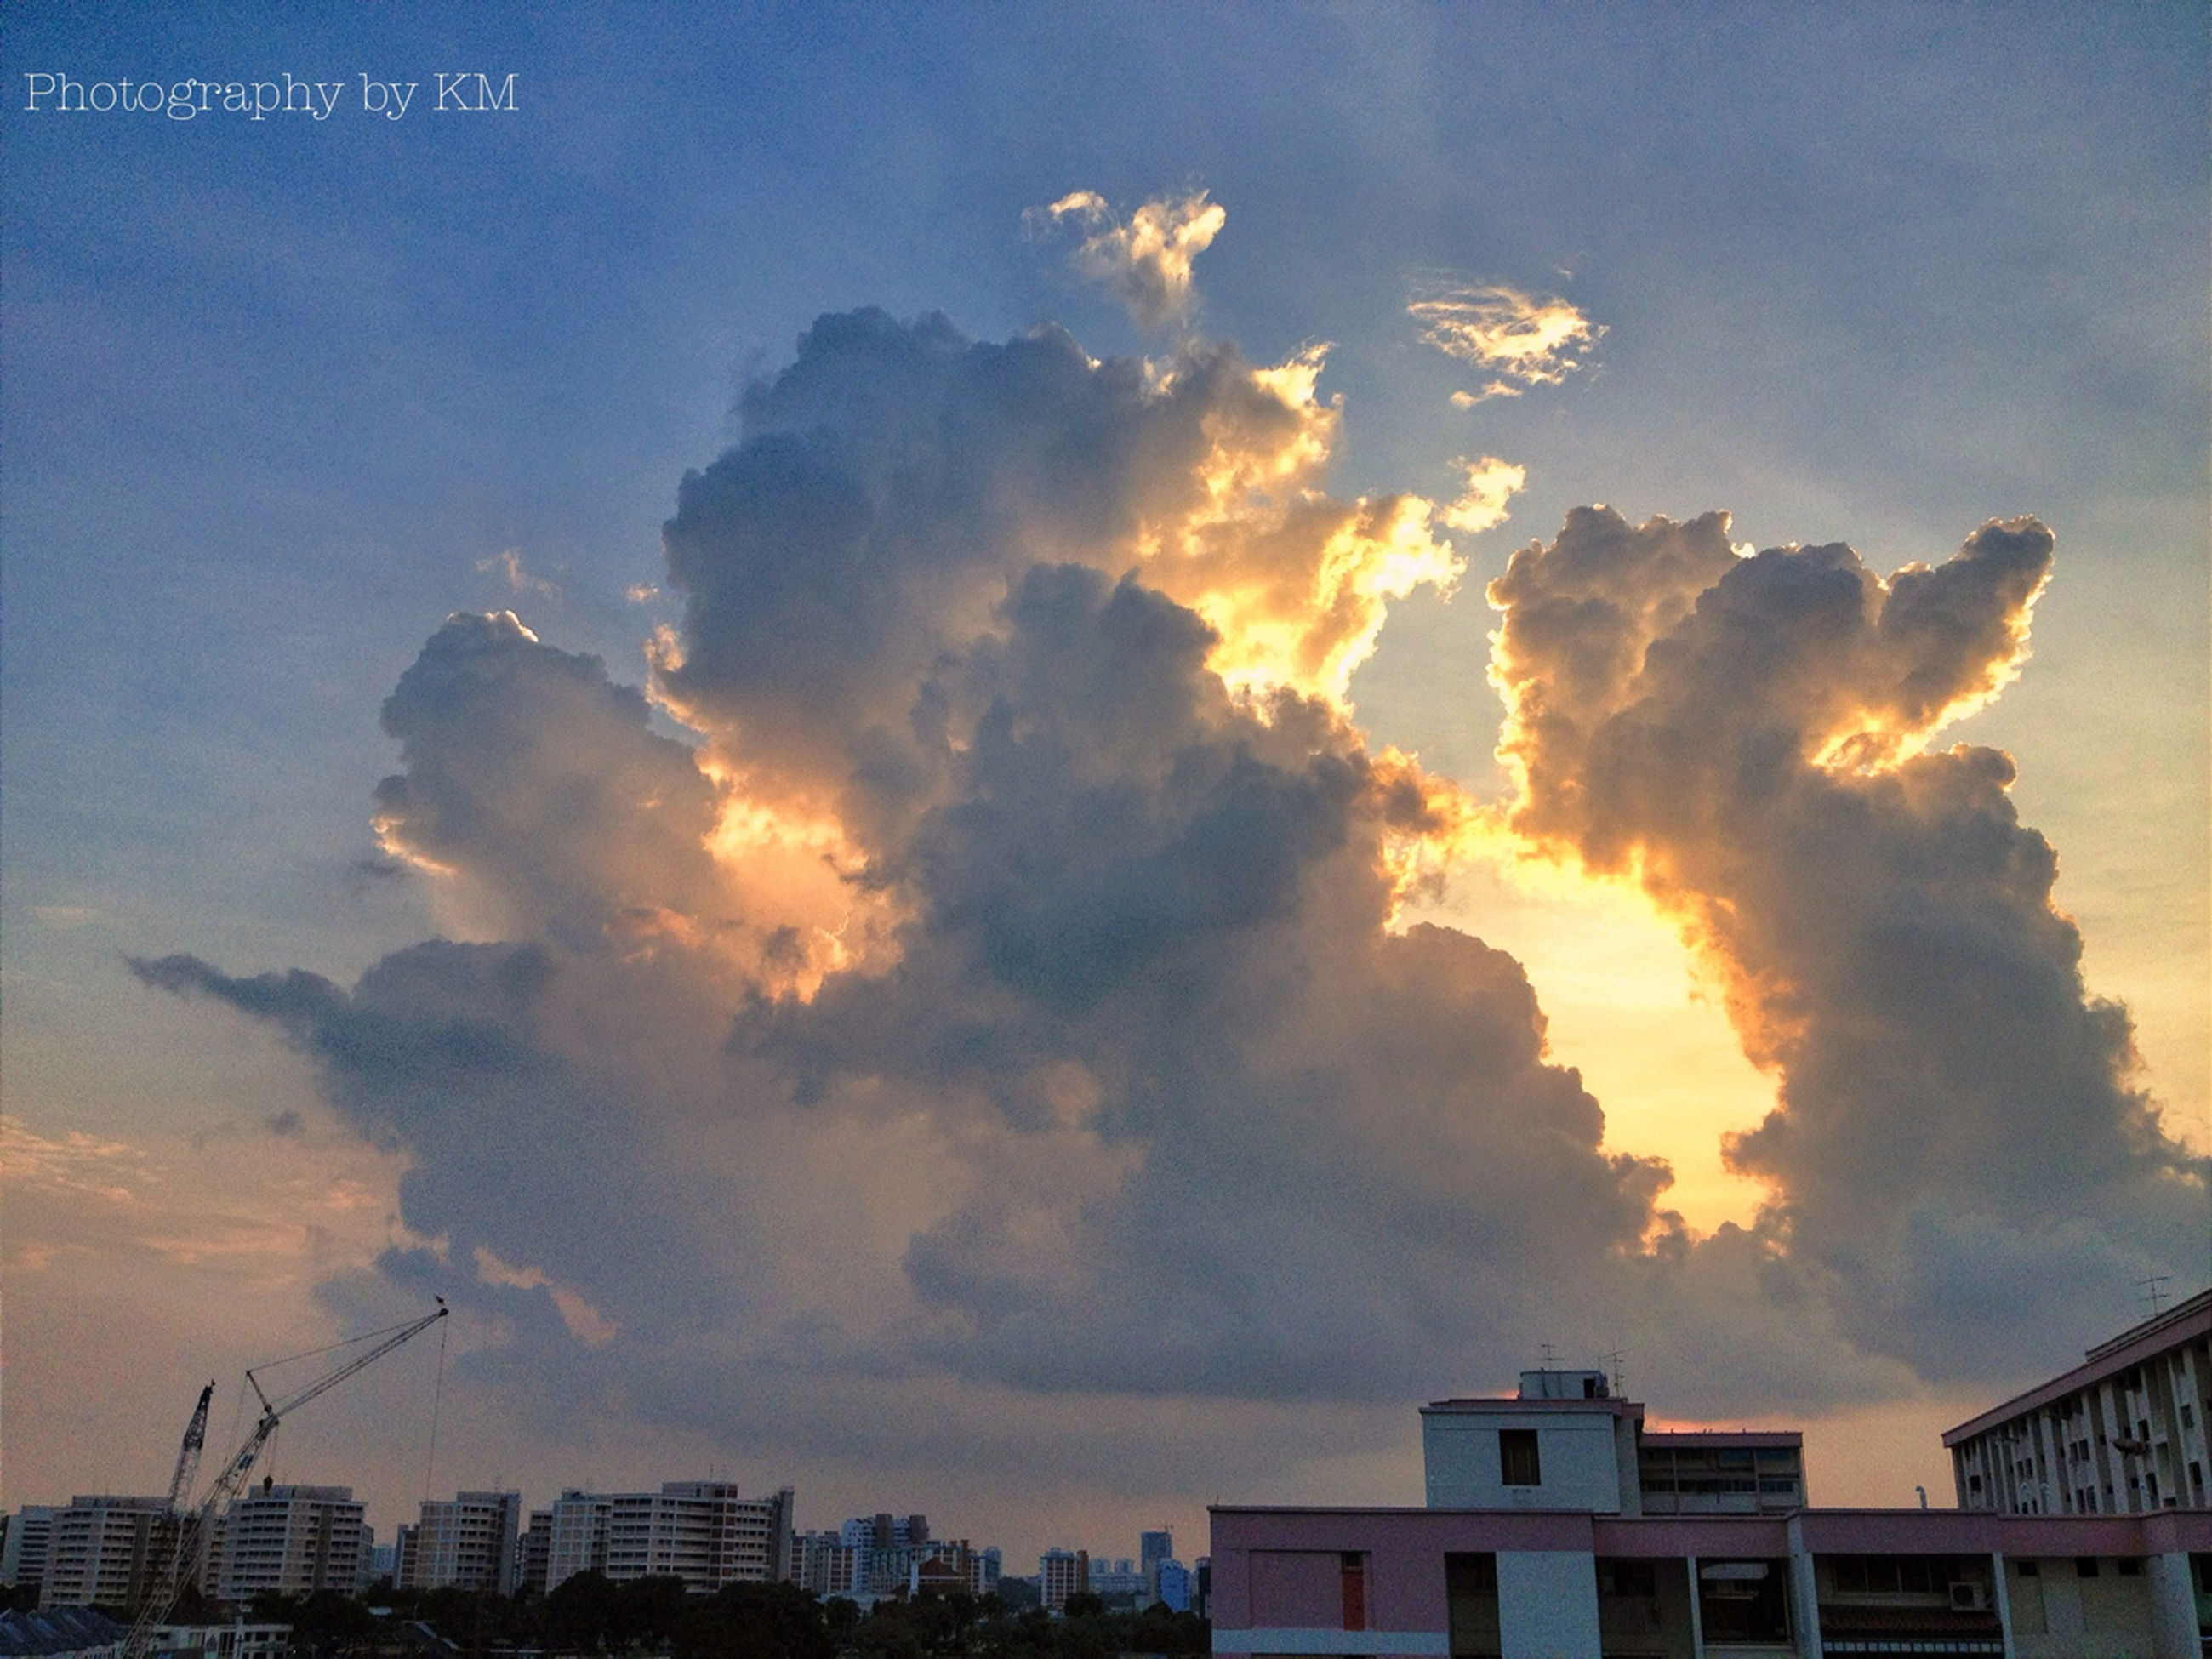 building exterior, architecture, built structure, sky, cloud - sky, sunset, cloudy, residential building, city, residential structure, weather, cloud, low angle view, dramatic sky, house, building, overcast, nature, beauty in nature, orange color